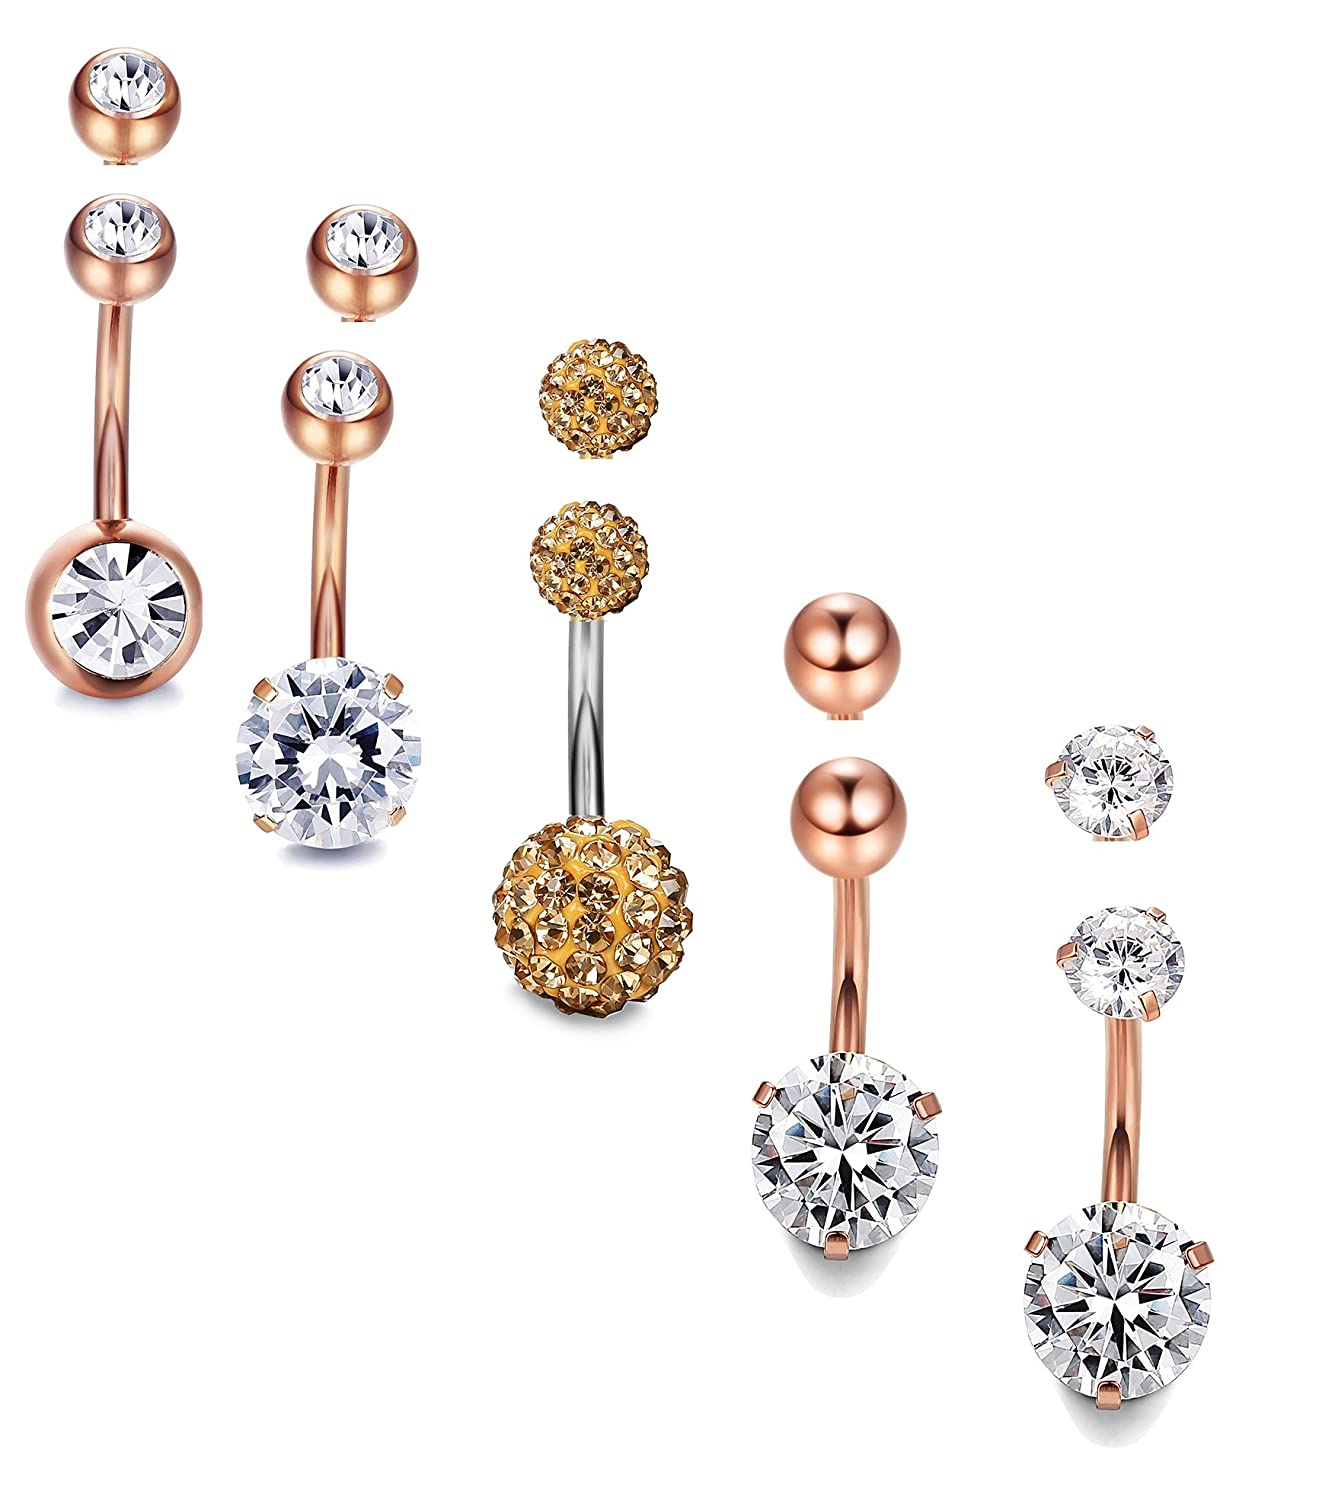 Milacolato 10PCS 14G Stainless Steel Belly Button Rings for Womens Girls Navel Rings Crystal CZ Ball Body Piercing 10pcs Replacement Balls QT-L-P0003-C